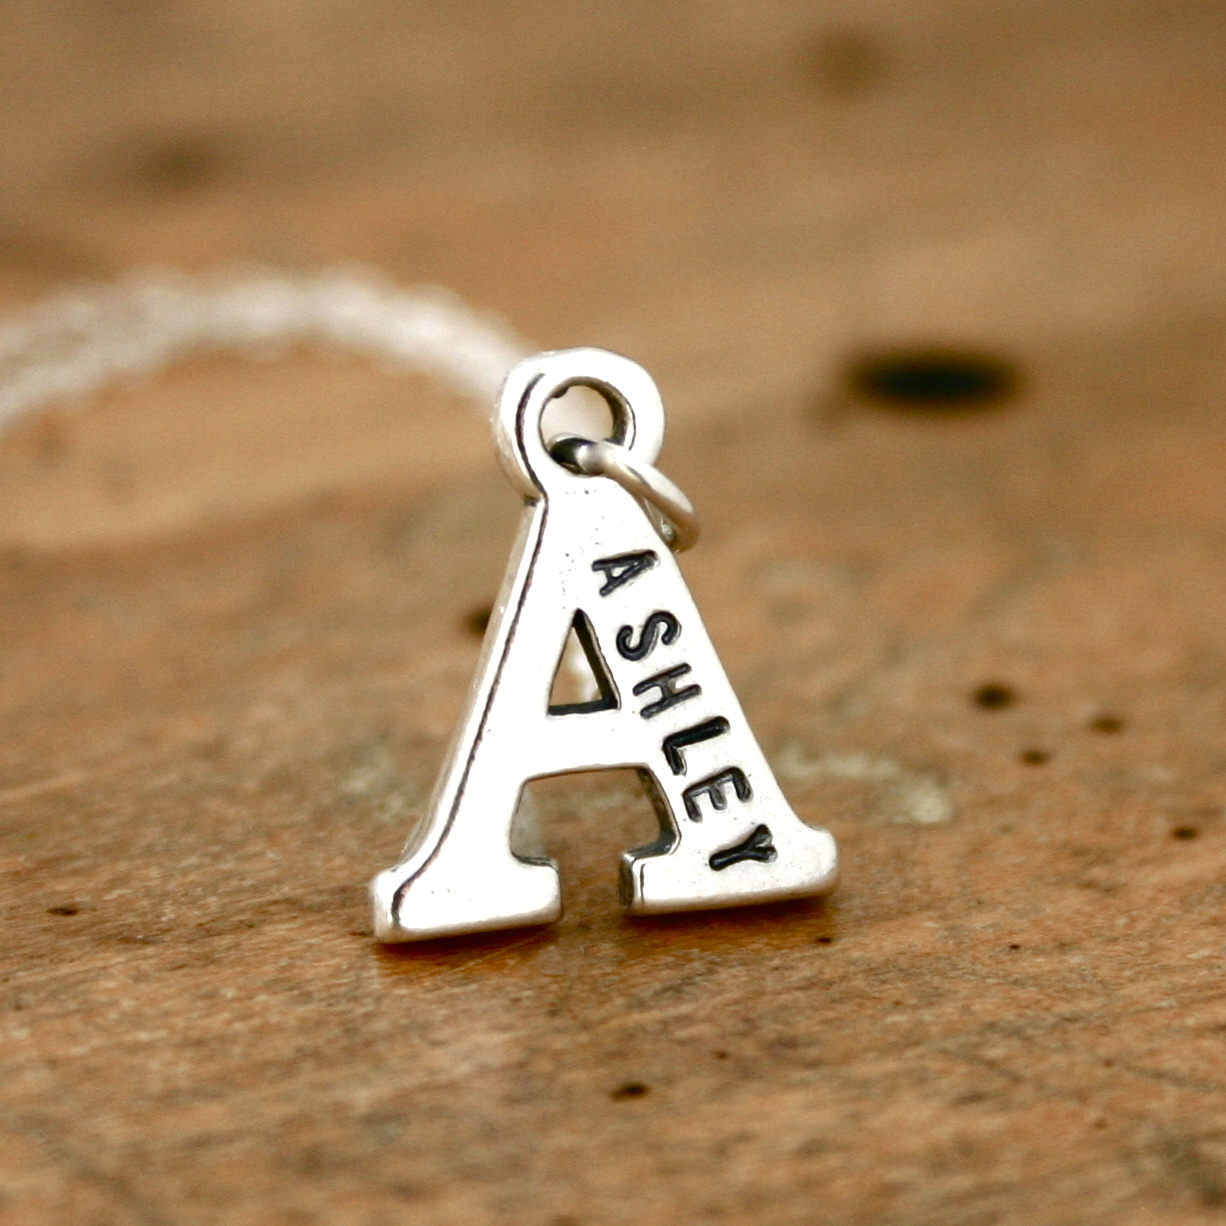 Stamped Initial Necklace.JPG